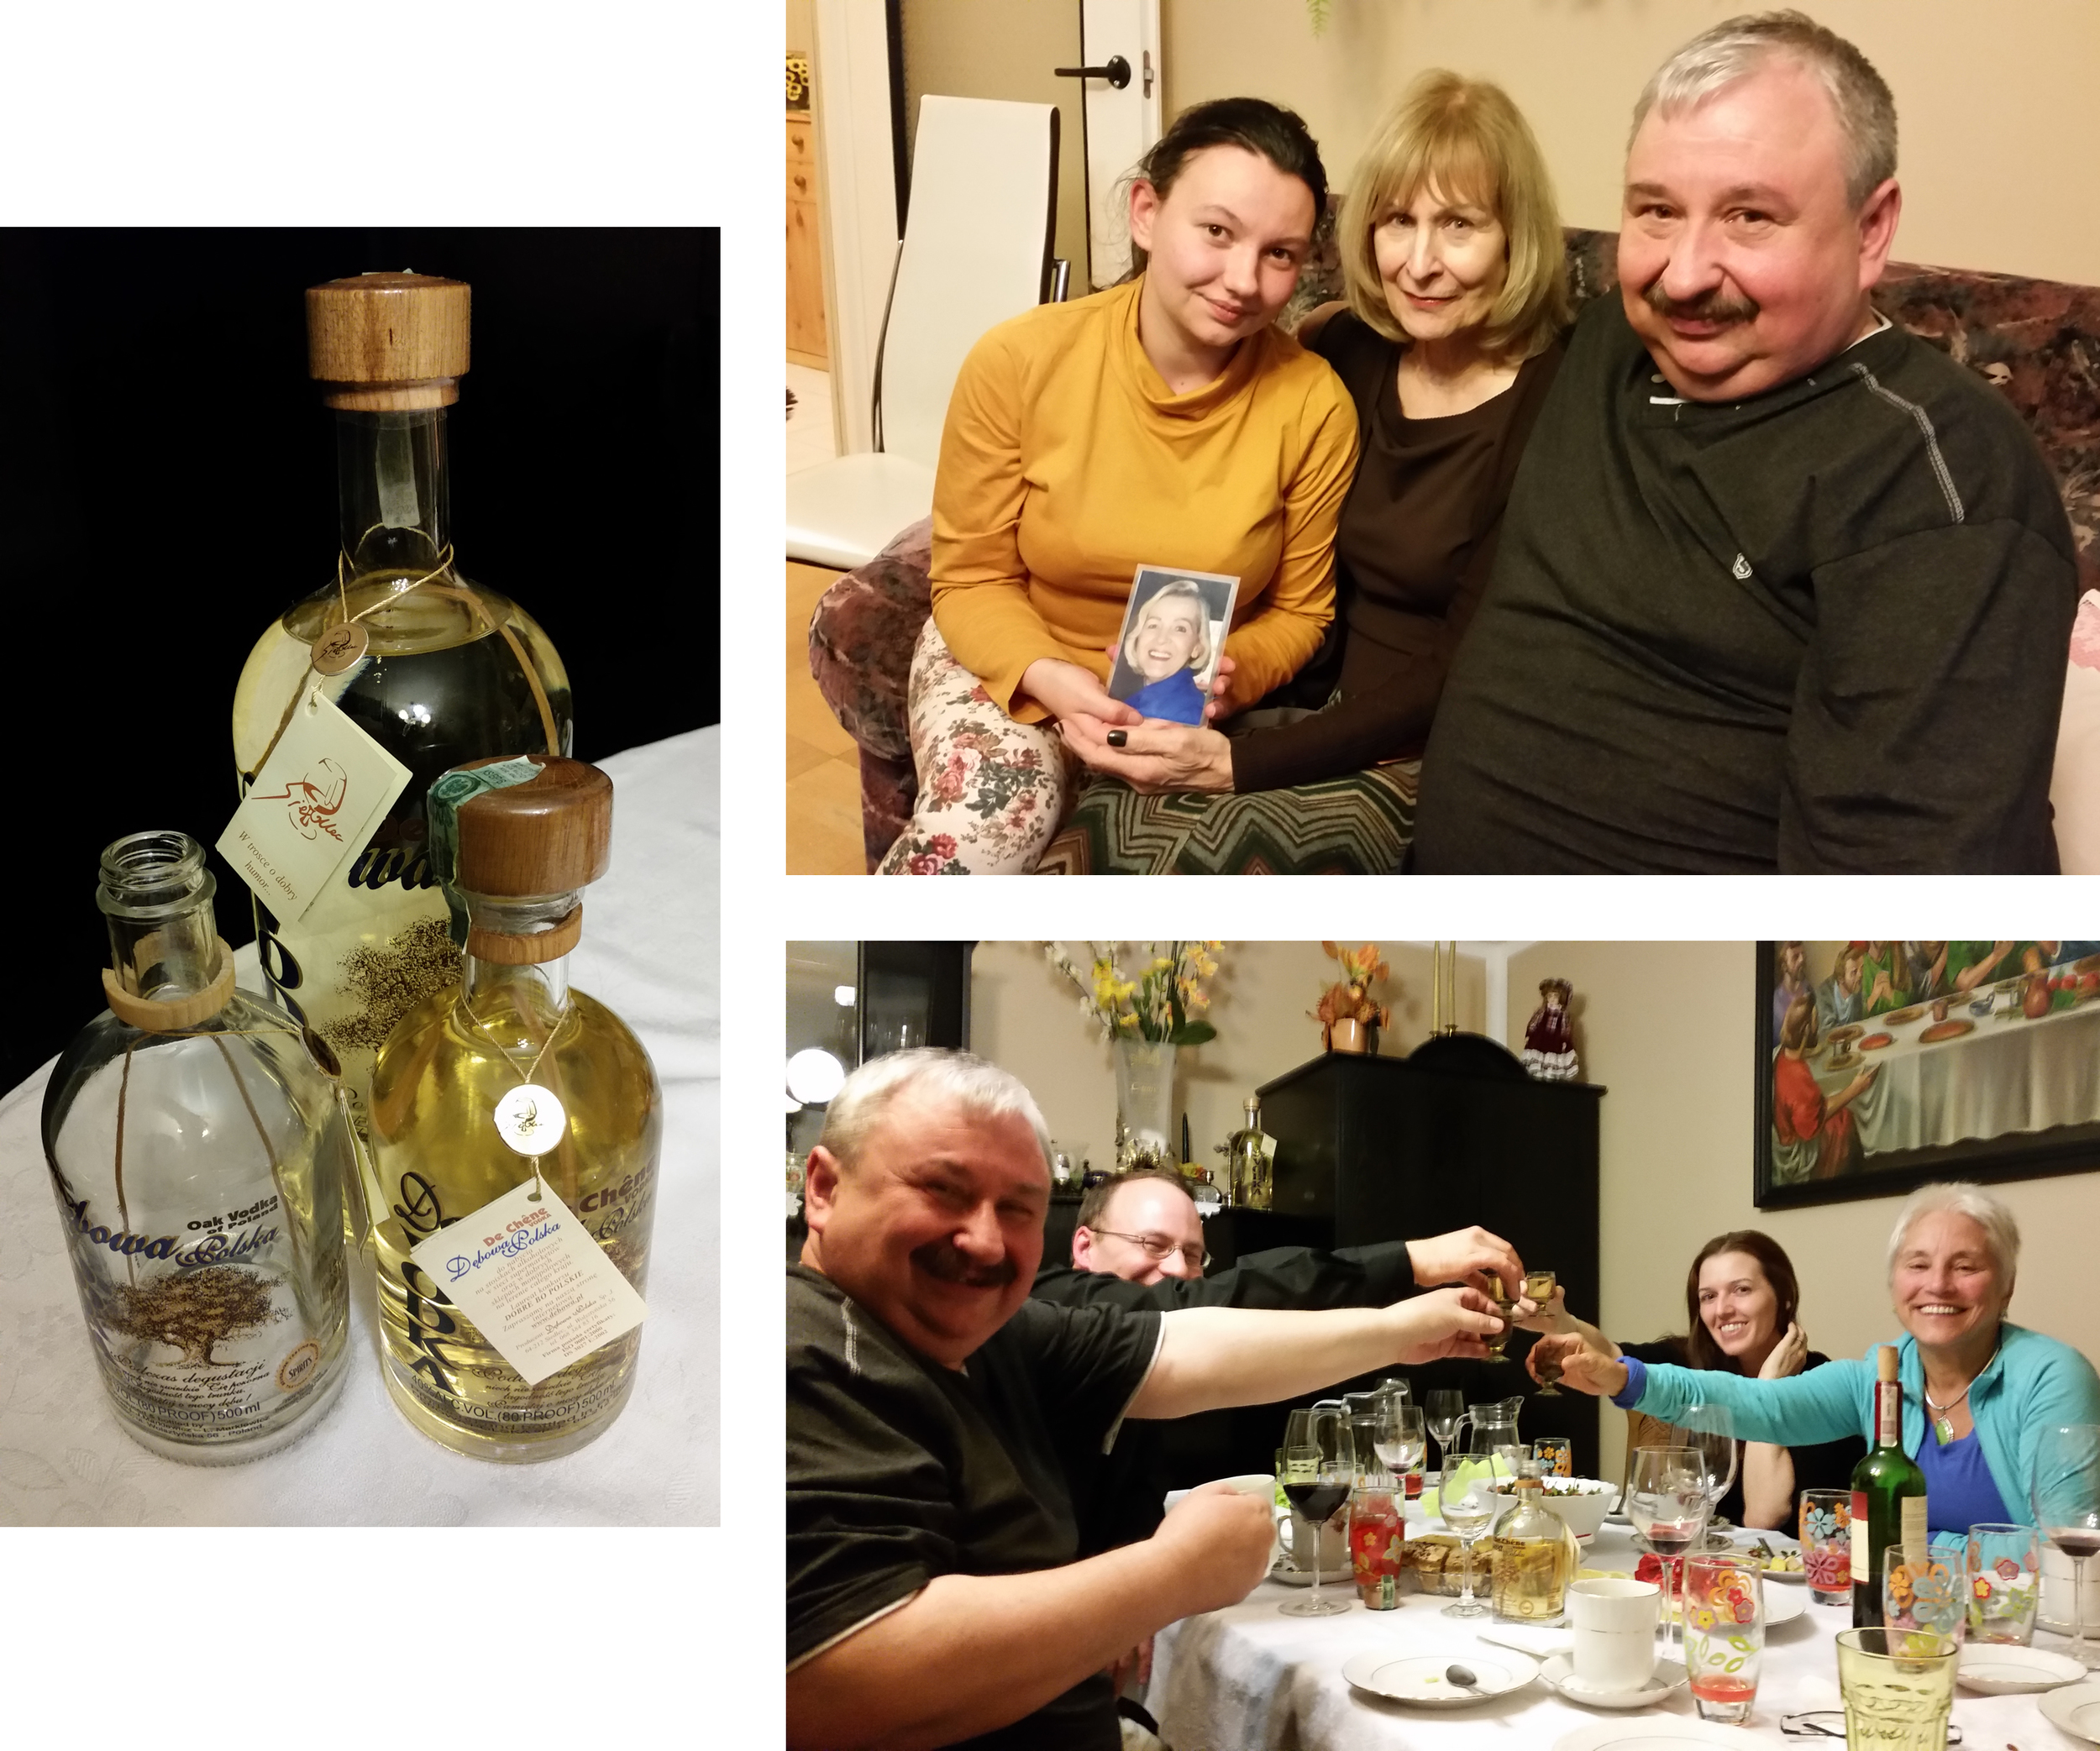 These 3 pictures neatly sum up our visit with the descendants of my great grandmother's sister  1. Drinking Debowa Vodka, a rye vodka aged in an oak barrel--you can see a little sliver of the oak in each bottle.  2. Sharing family photos--that's my mom and Agata cradling a picture of my Grandmother in their joined hands.  3. Eating wonderful food prepared by Alina, Agata's mother and then toasting to her and our families with more Debowa Vodka. (Bottom pic from left to right: Grzegorz-Agata's father; my brother, Doug; Karyn, my sister-in-law and Patty, my second cousin.)